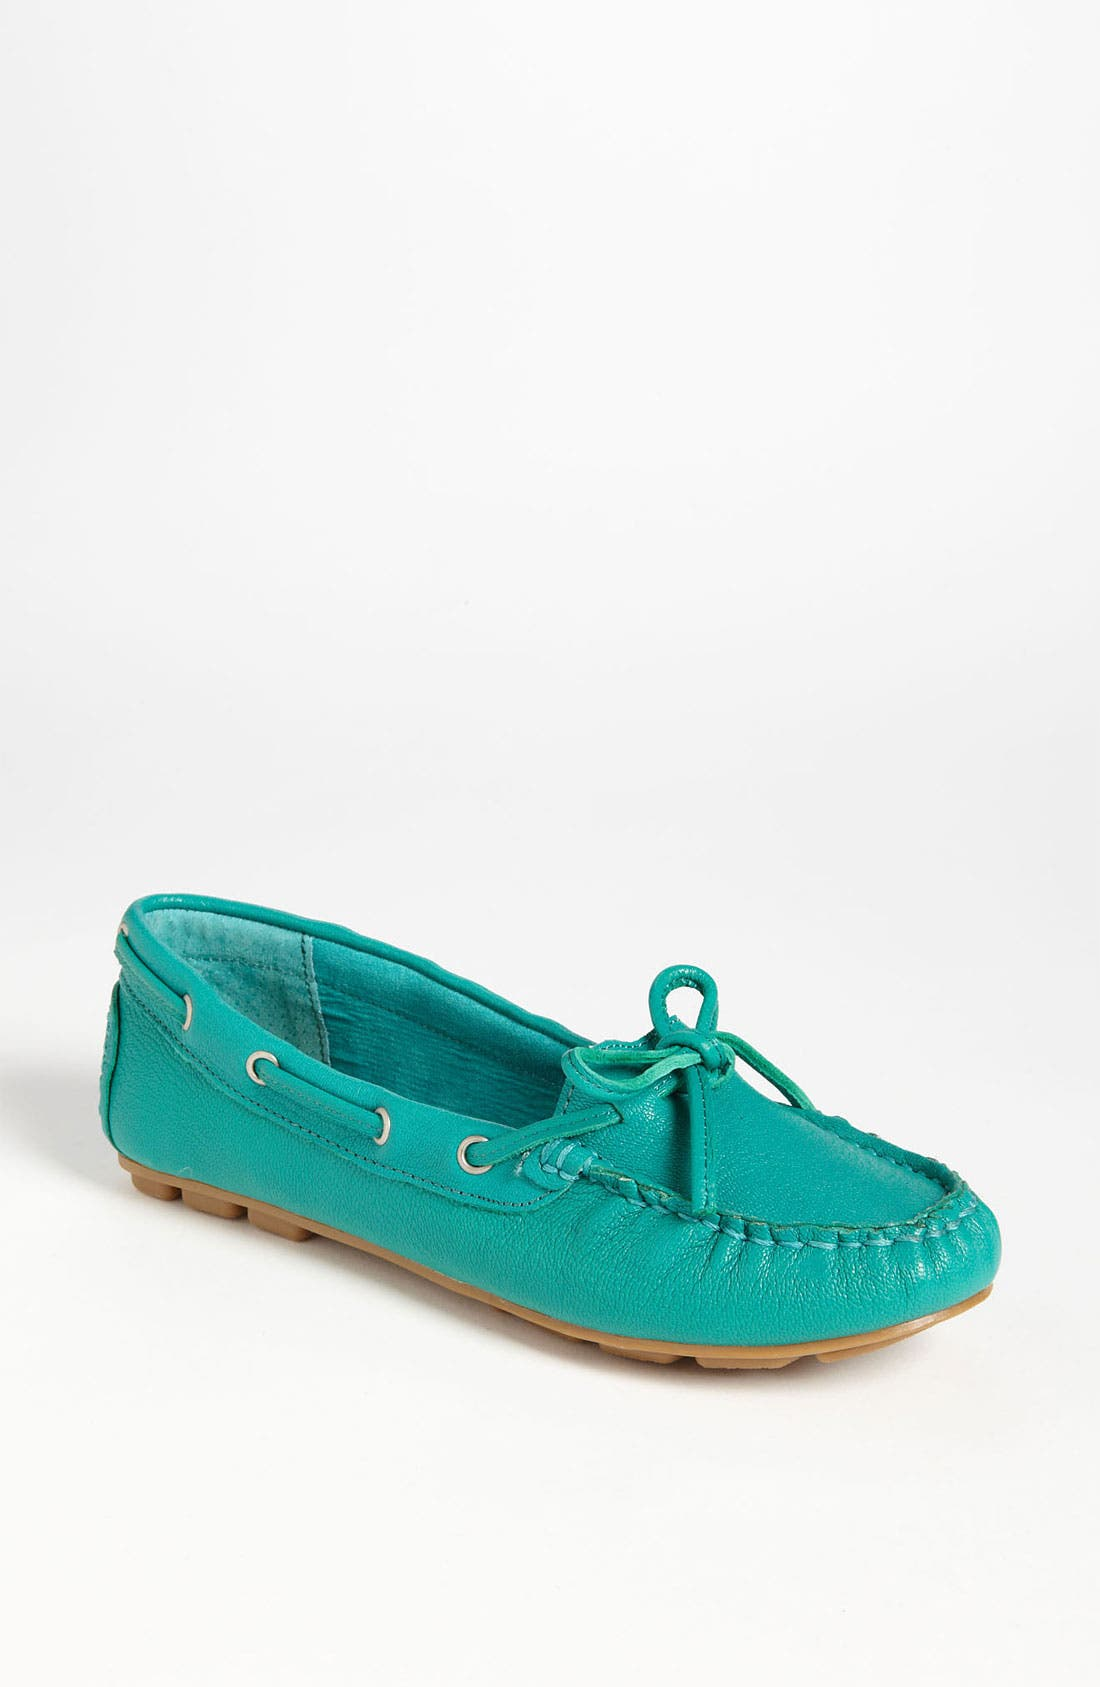 Main Image - Lucky Brand 'Darice' Moccasin